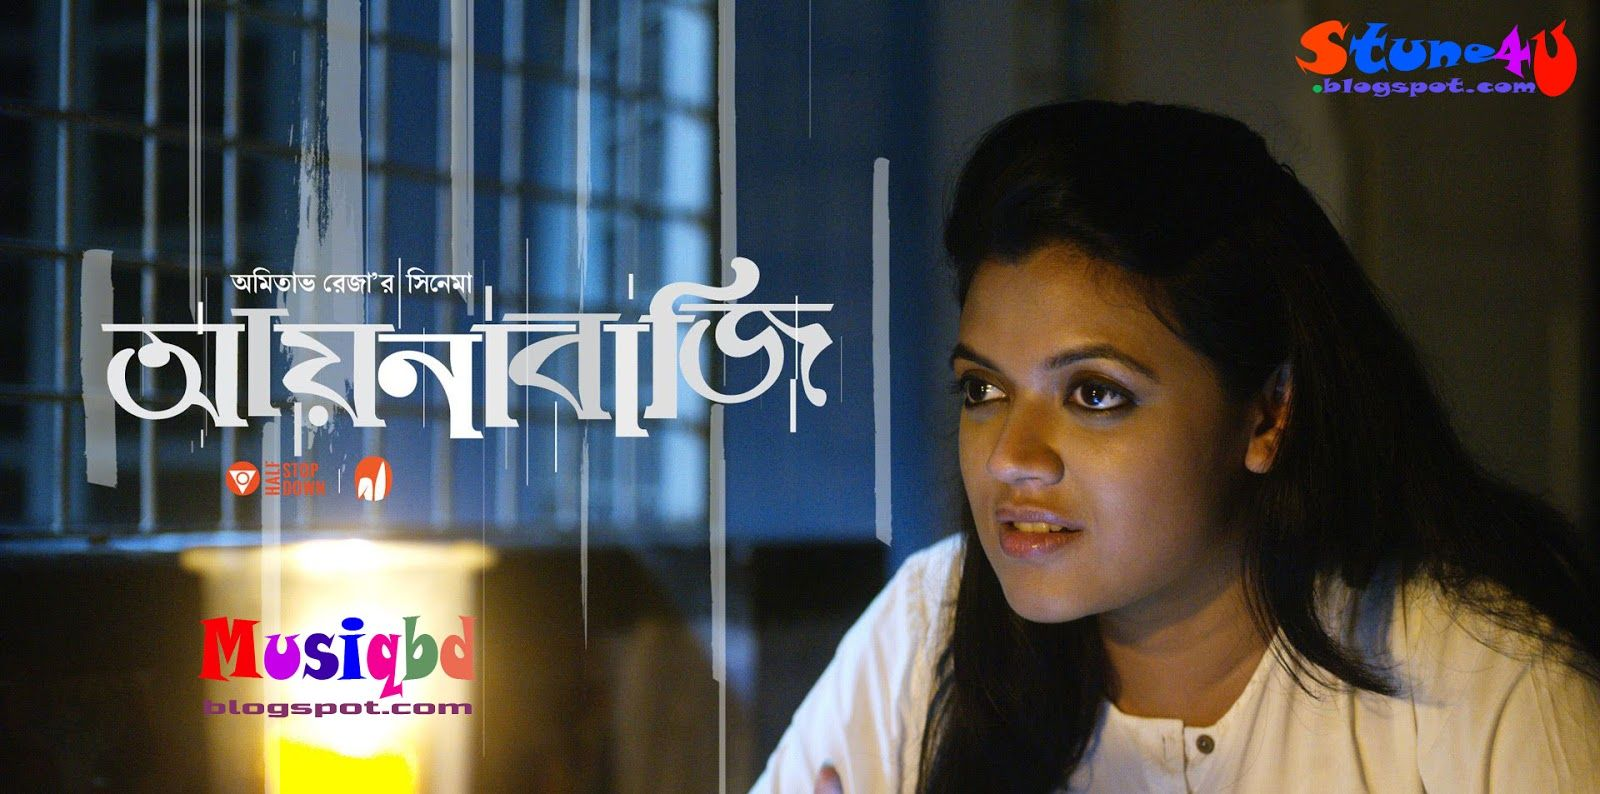 Most Relevant Video Results bangla song